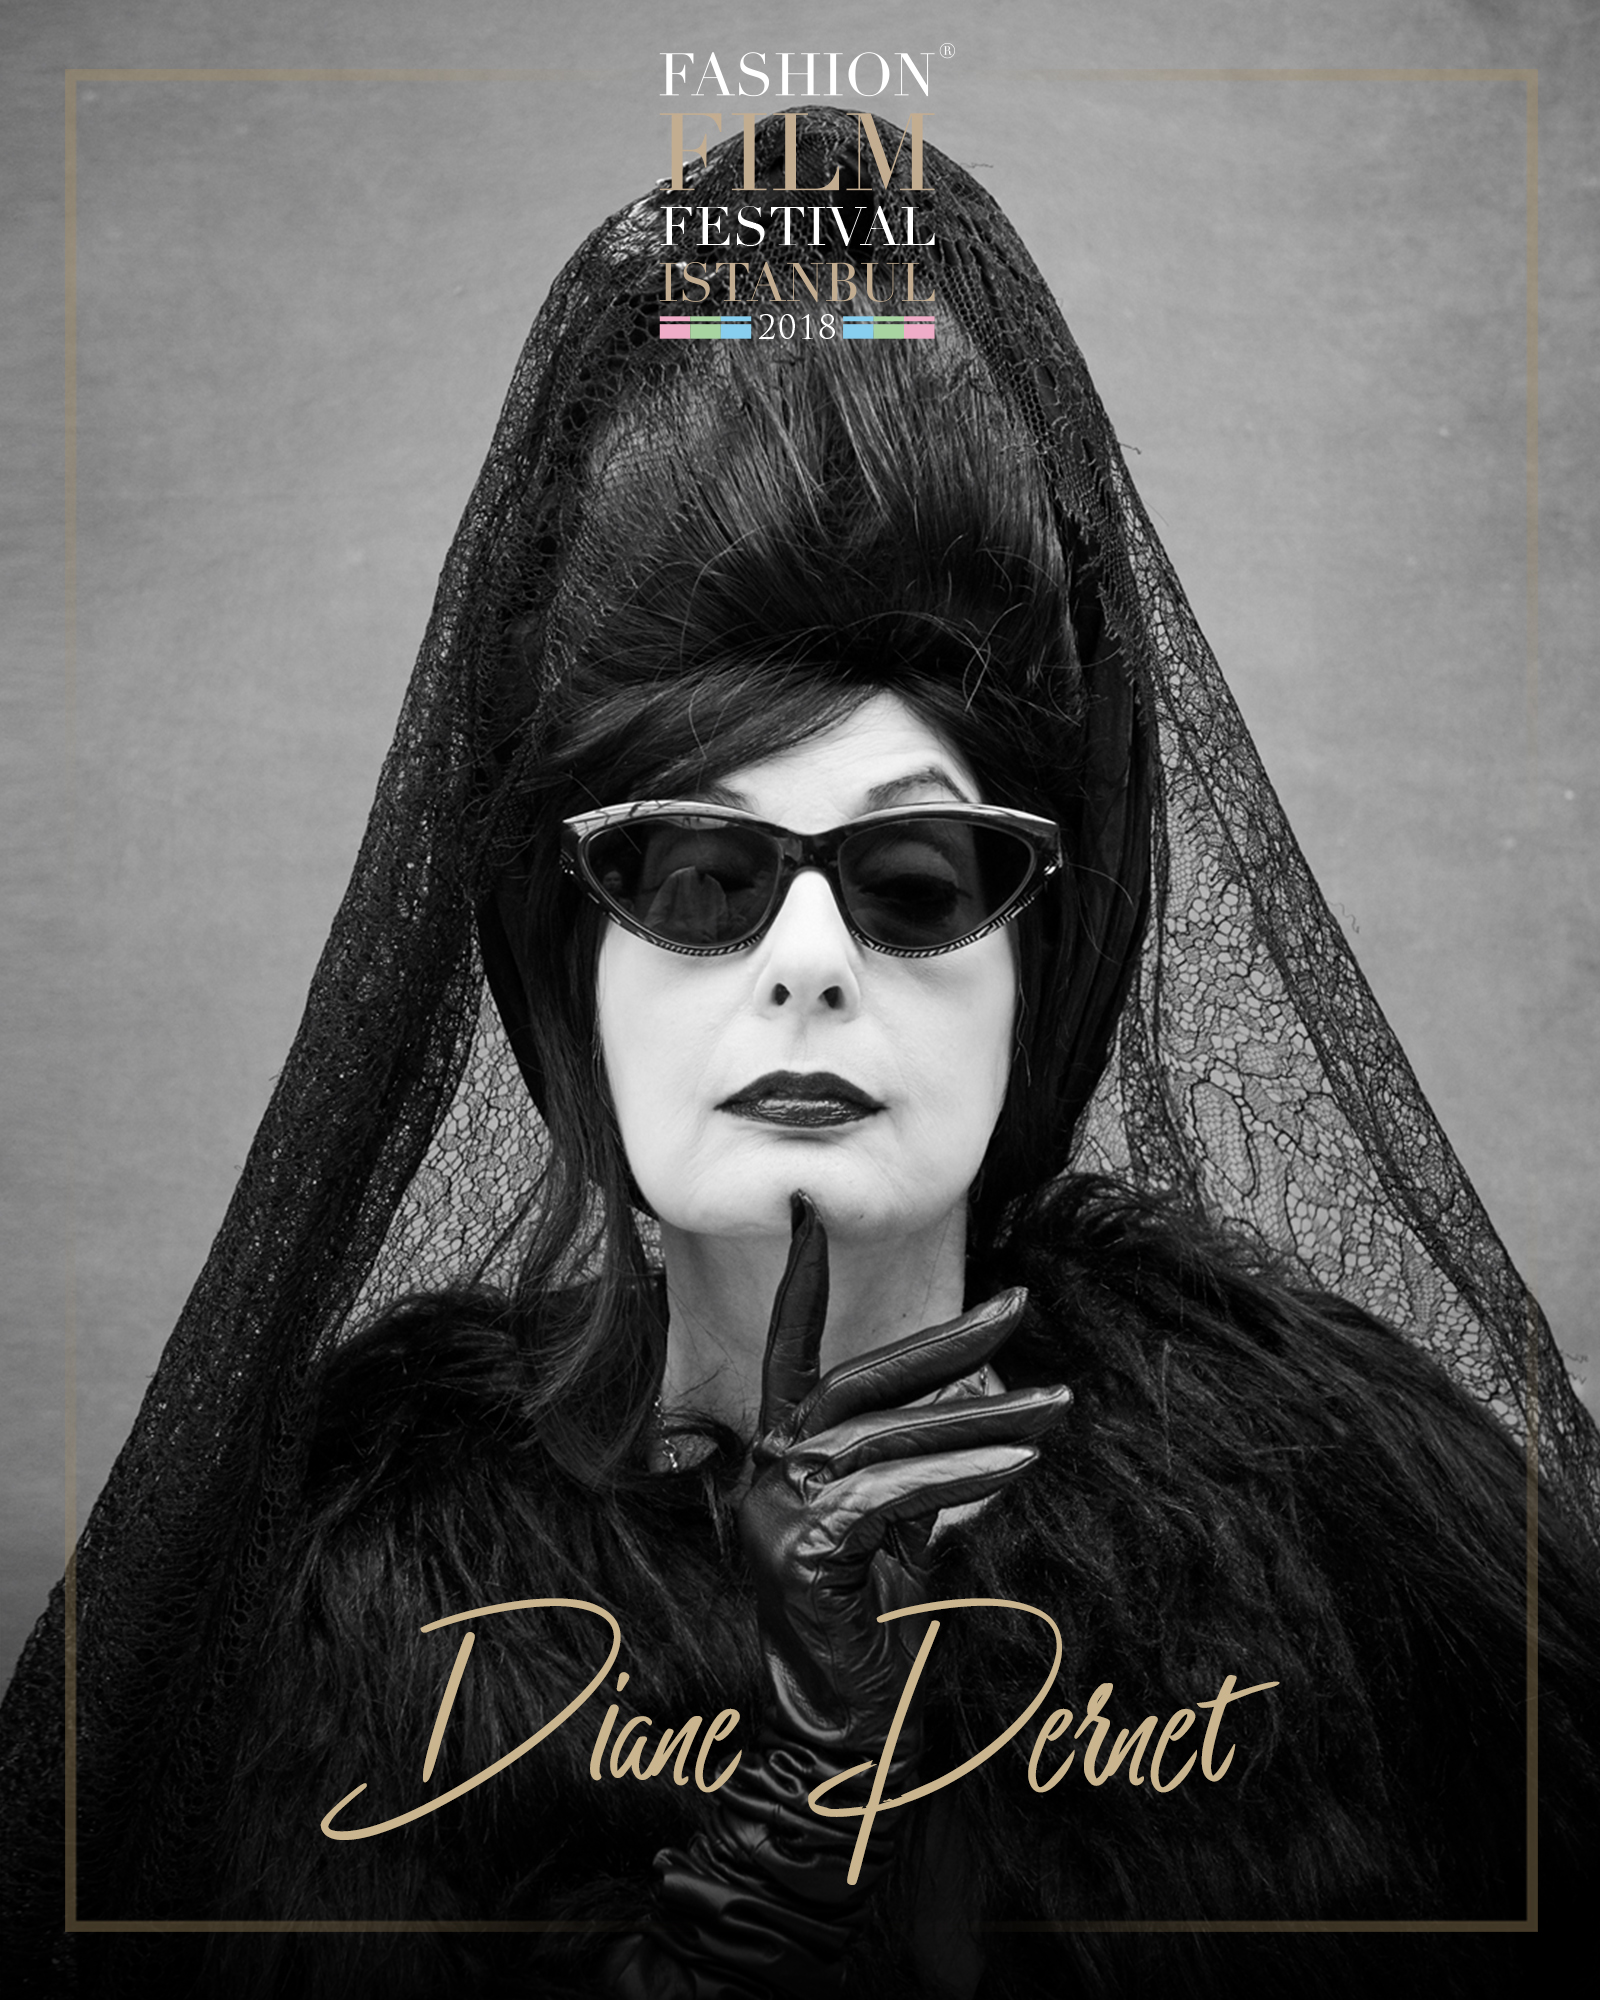 Diane Pernet    Founder/Director    A Shaded View on Fashion Film